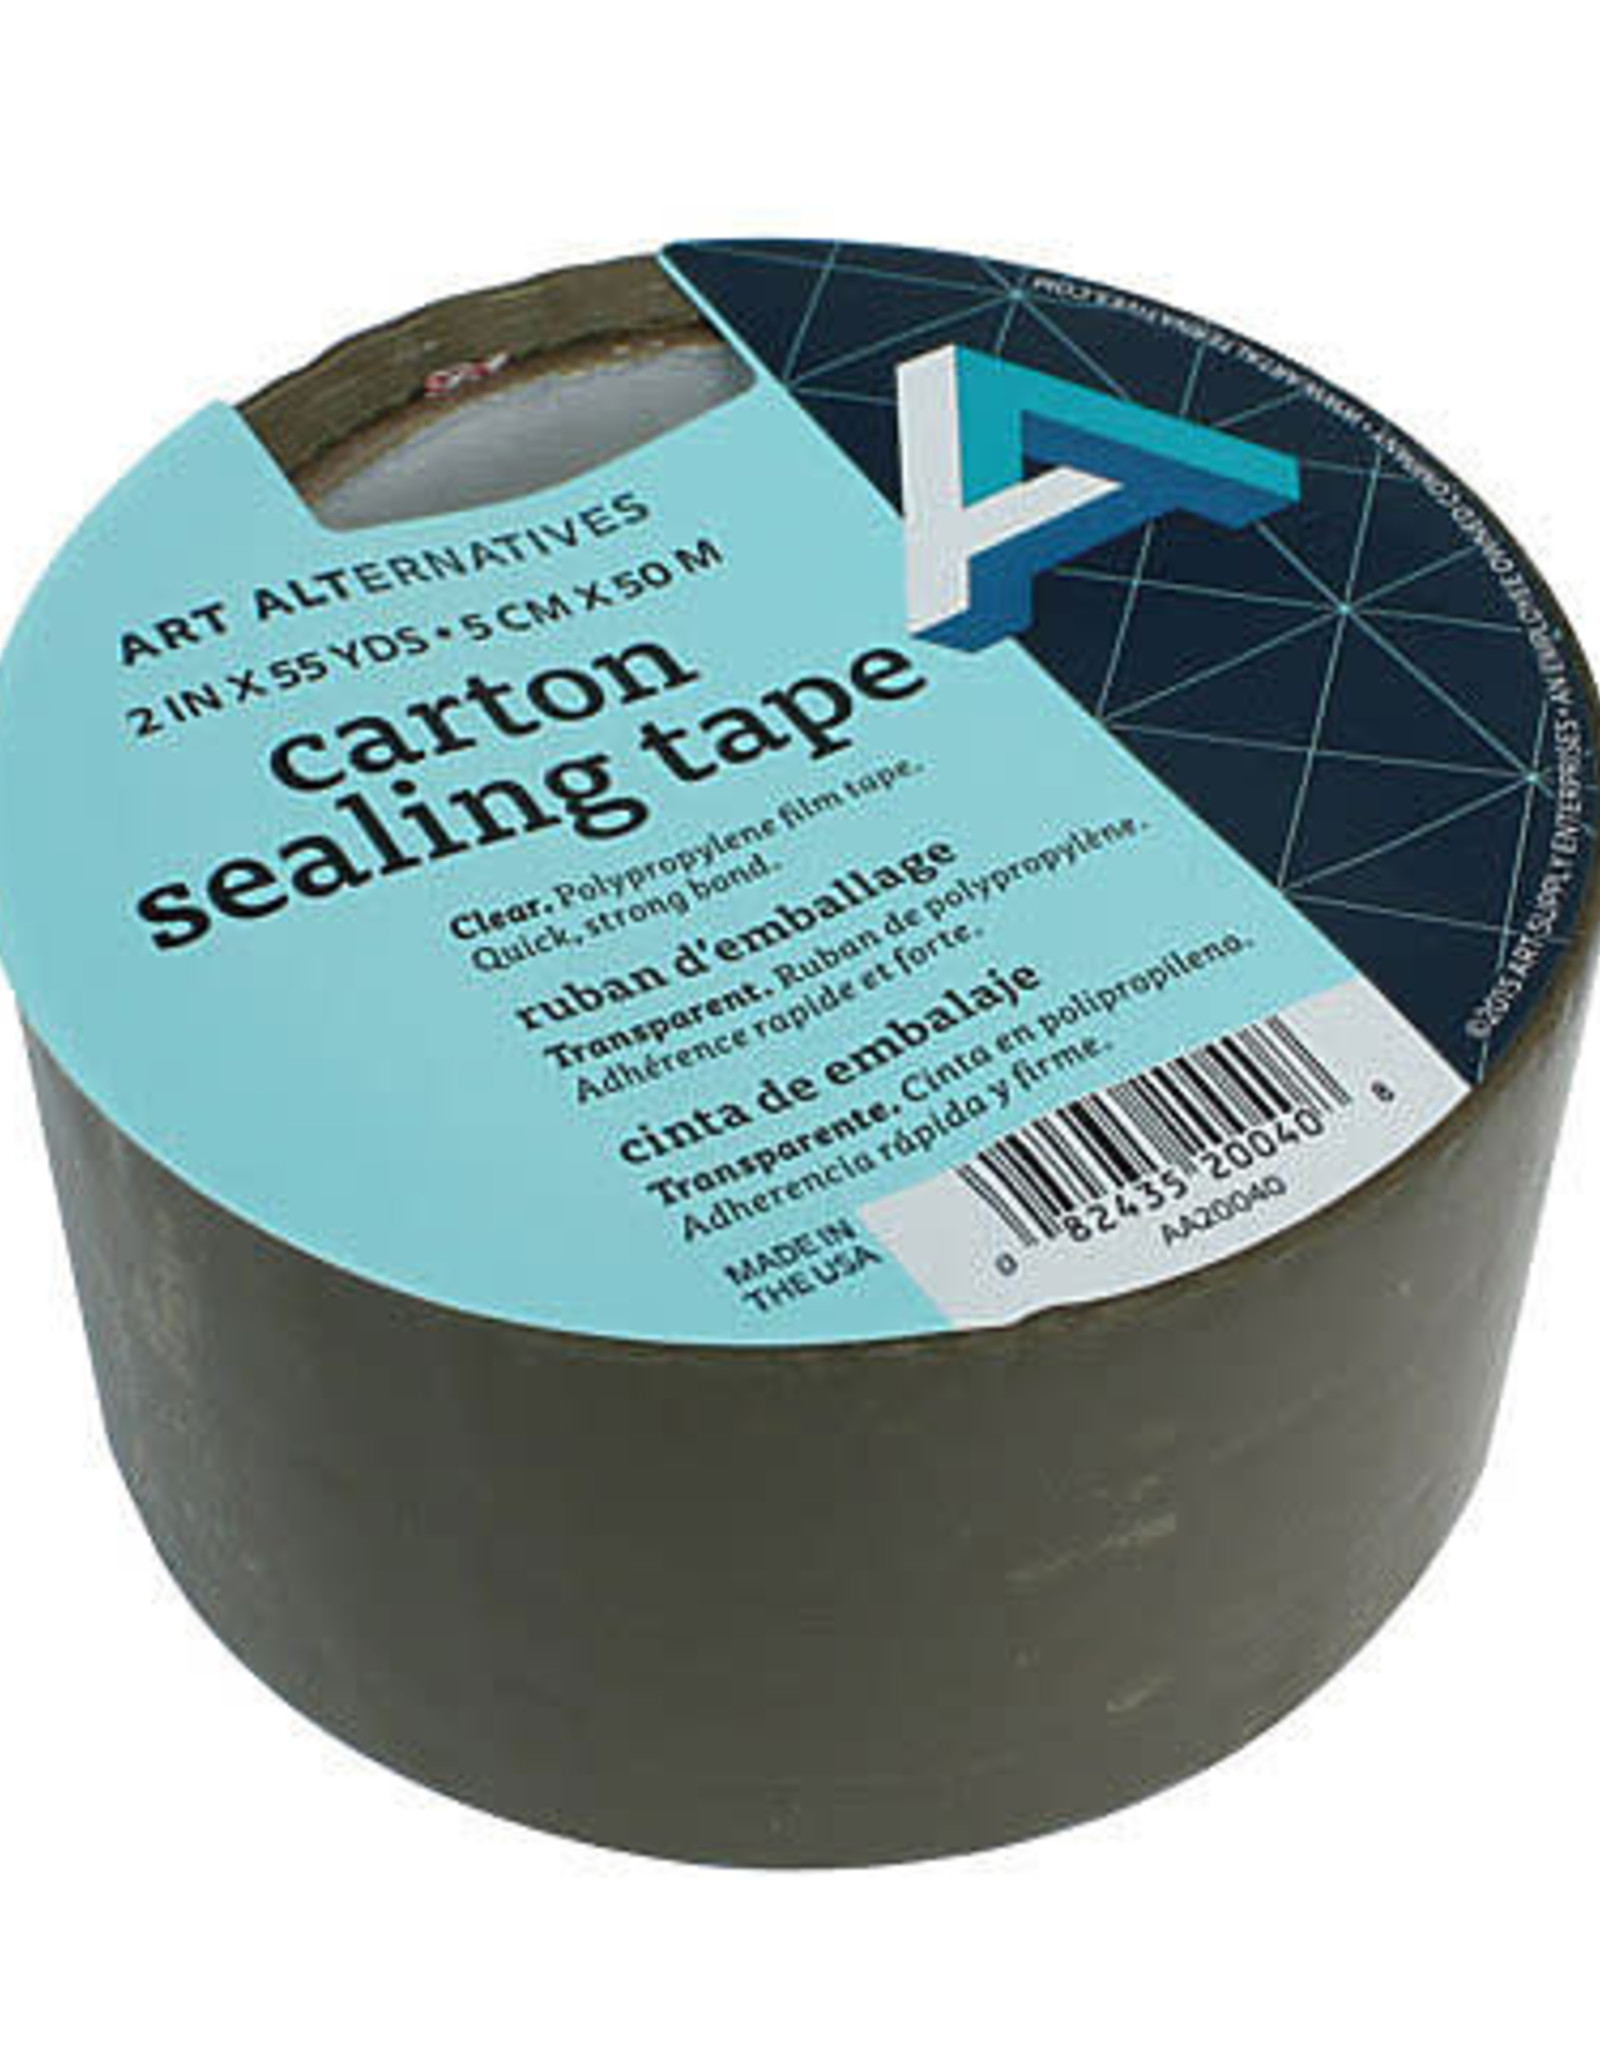 "Carton Sealing Tape 2"" x 55 Yards"